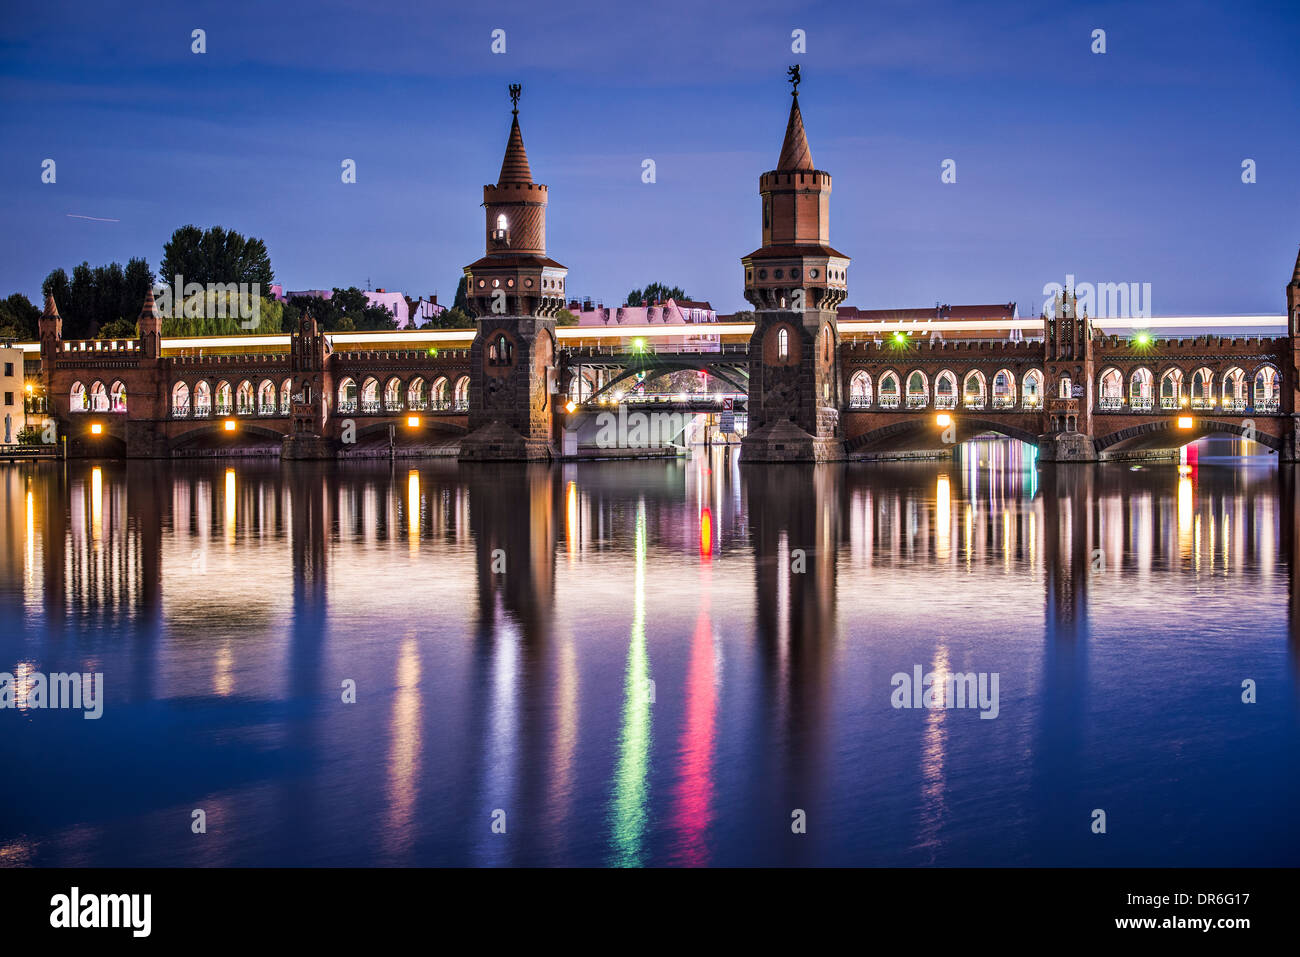 Berlin, Germany at the Oberbaum Bridge over the Spree River. Stock Photo